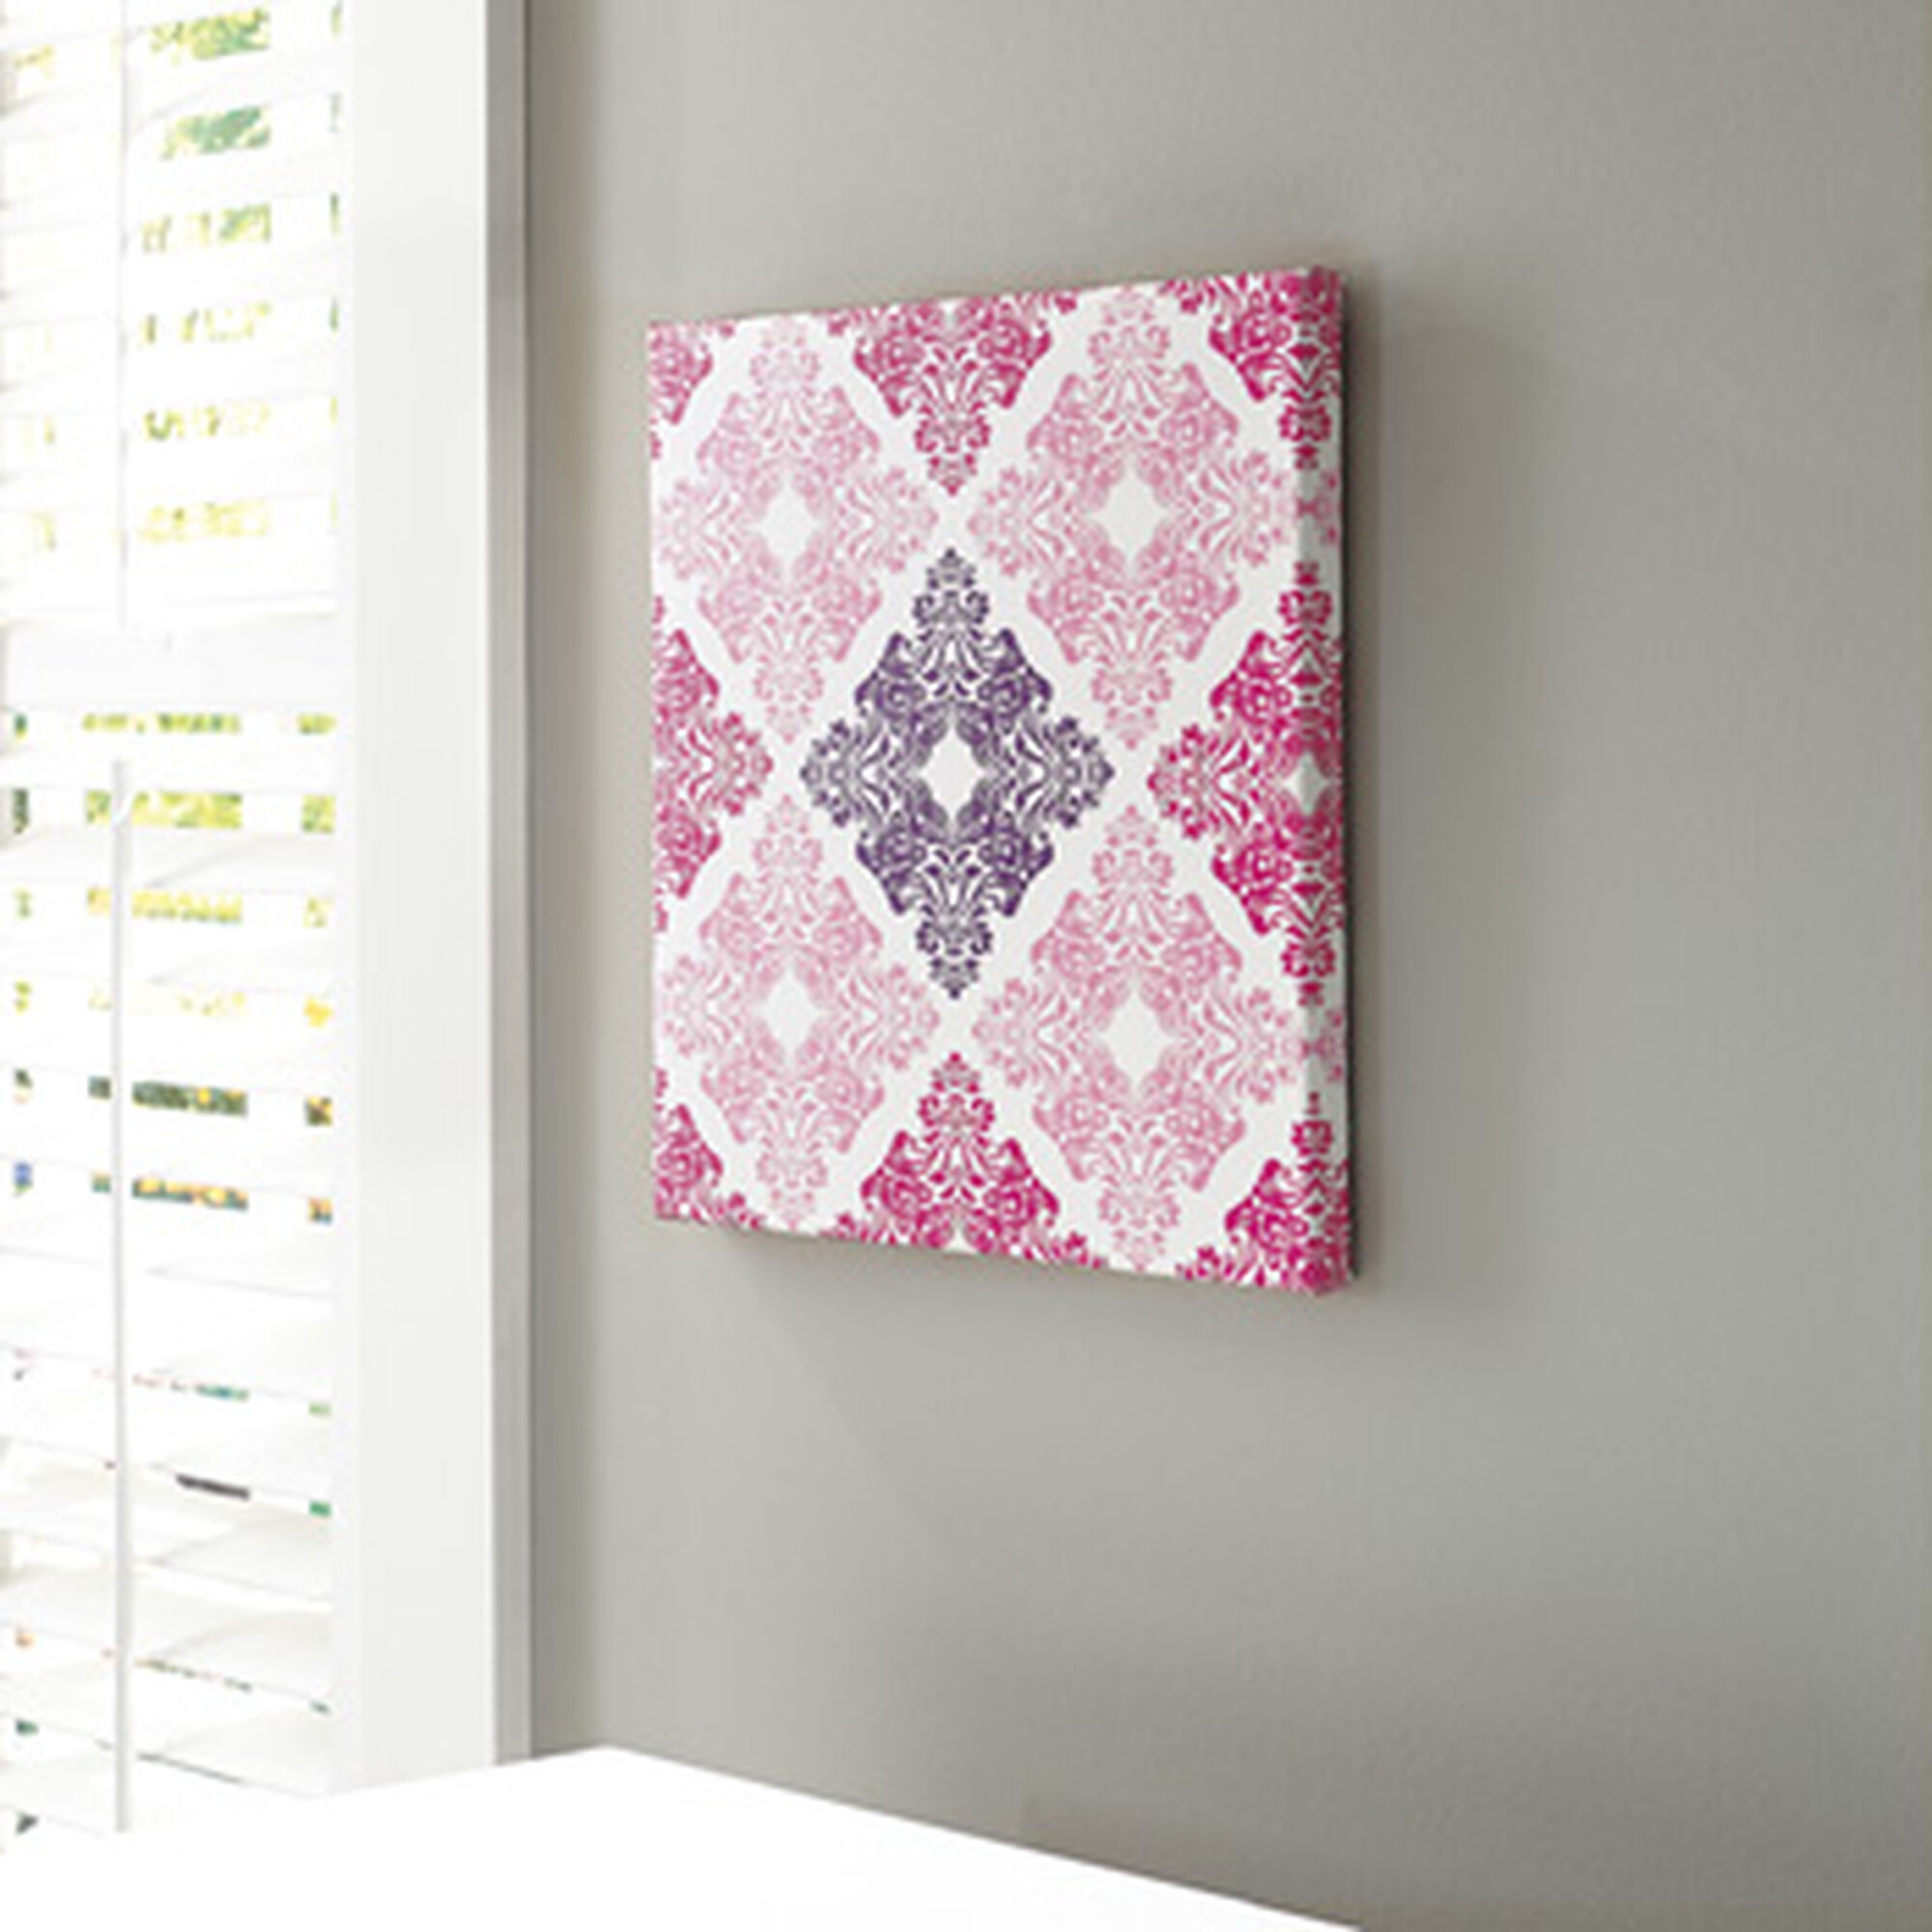 Purple Canvas Rug: Contemporary Patterned Design Canvas Wall Art In Pink